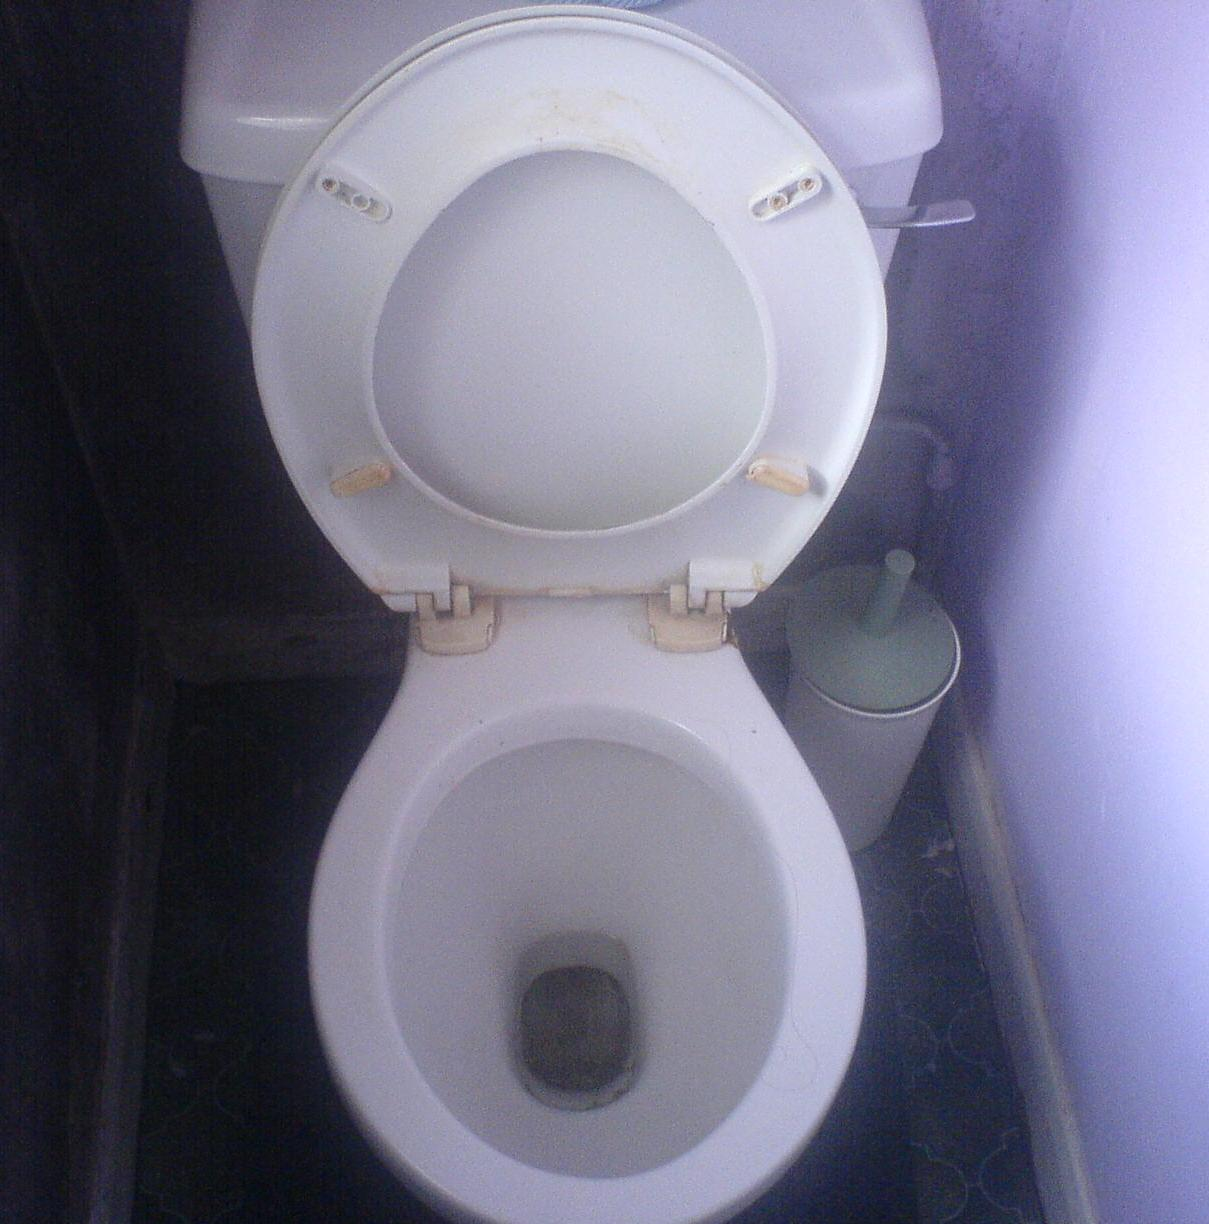 the toilet overview The humanure handbook, 3rd edition, foreign editions, how to use a humanure toilet - composting human waste, recycling human excrement, using a compost toilet.